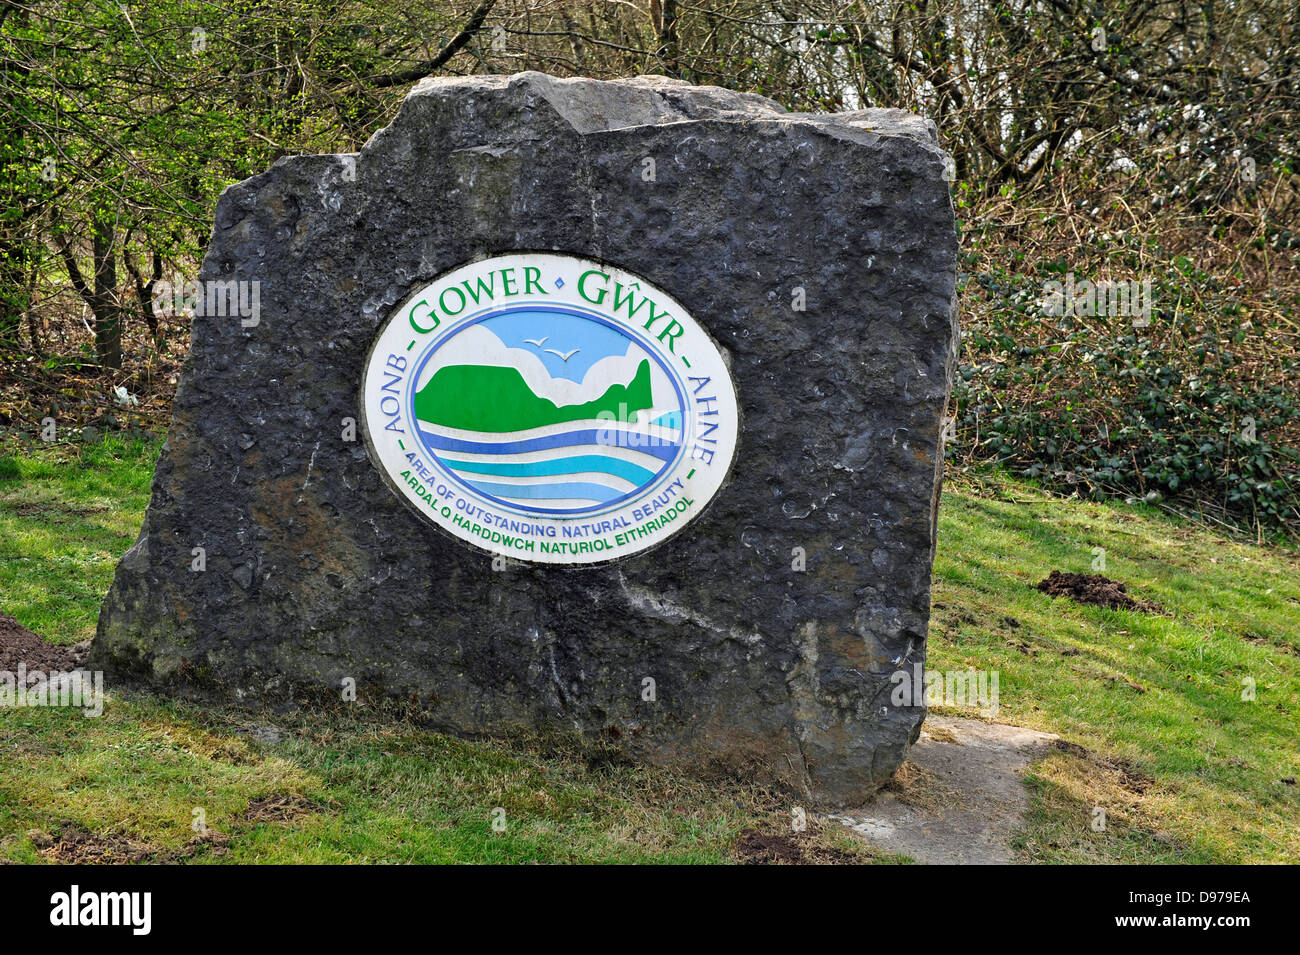 Sign on entry to the Gower Swansea in South Wales, UK - Stock Image